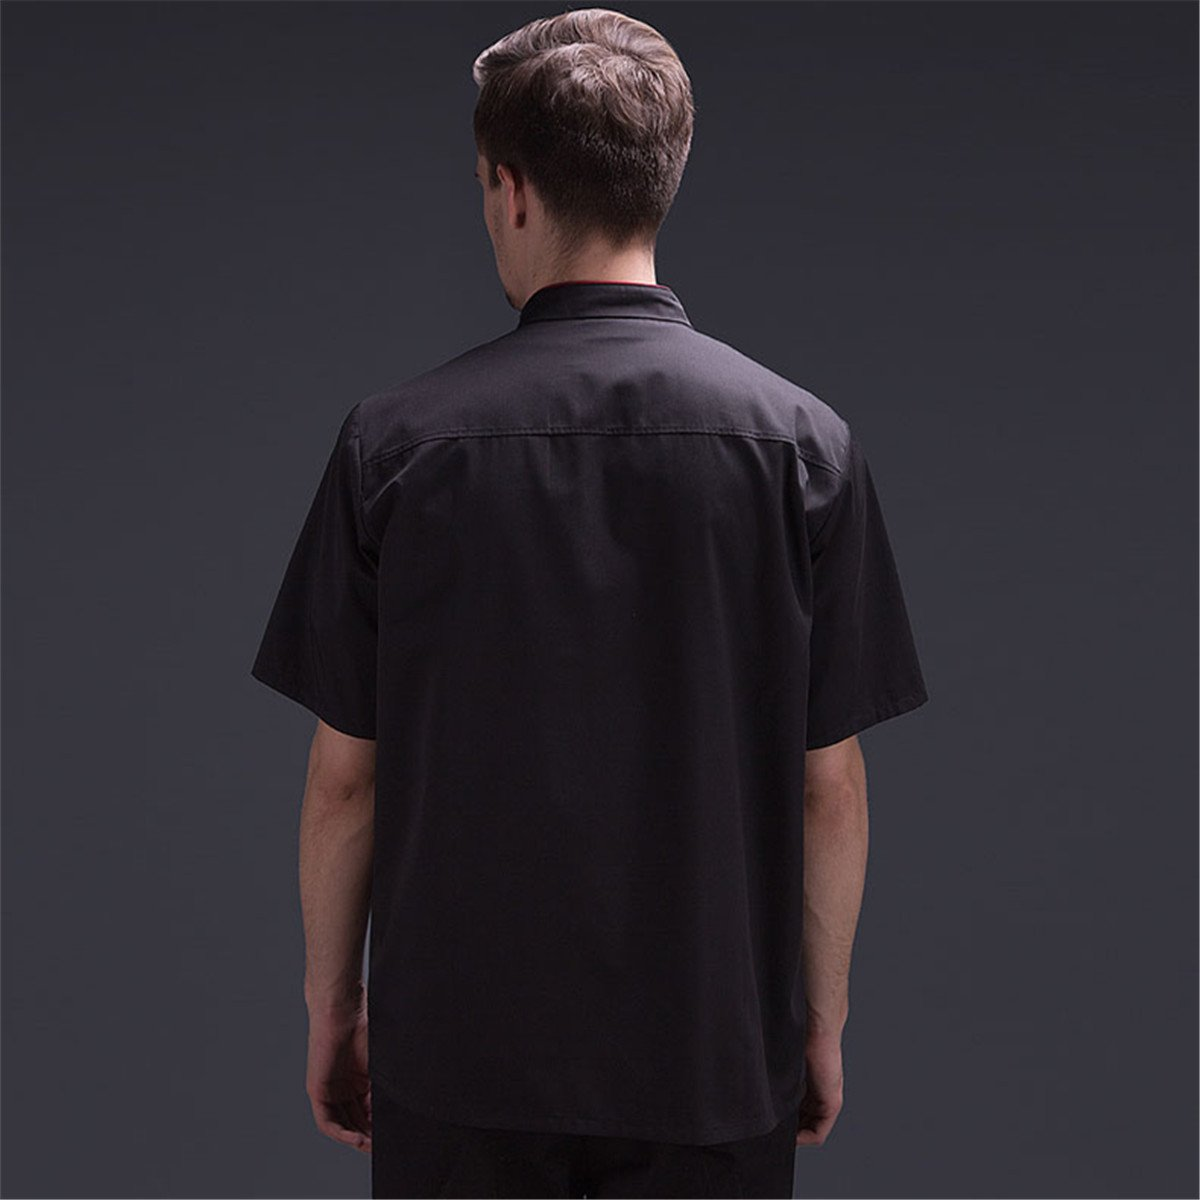 XINF Chef Uniform Short Sleeve Restaurant Work Dress Chef Jacket Double Breasted Chef Coat Summer by XINFU (Image #7)